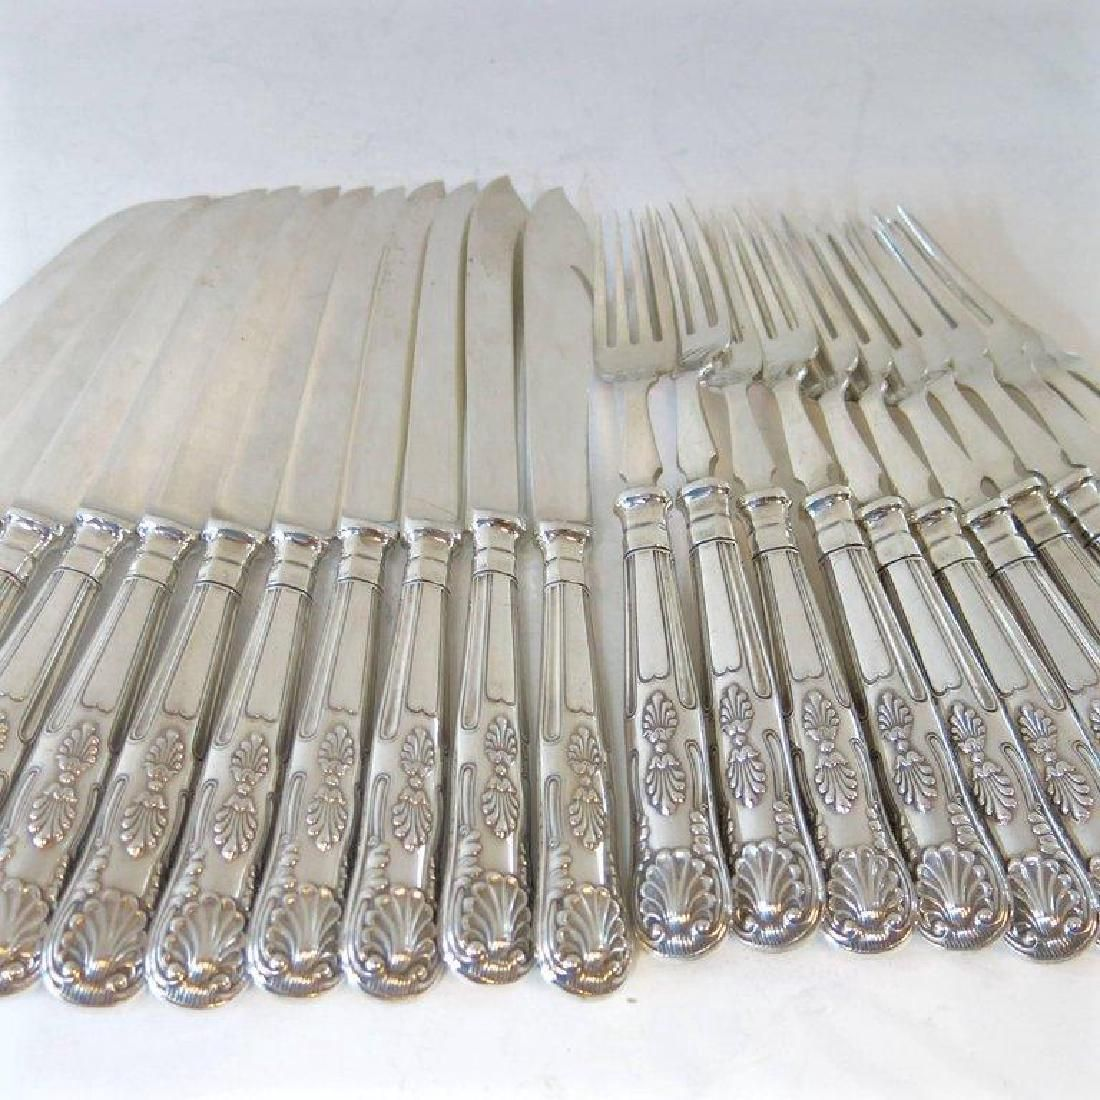 And silver mappin webb Mappin &